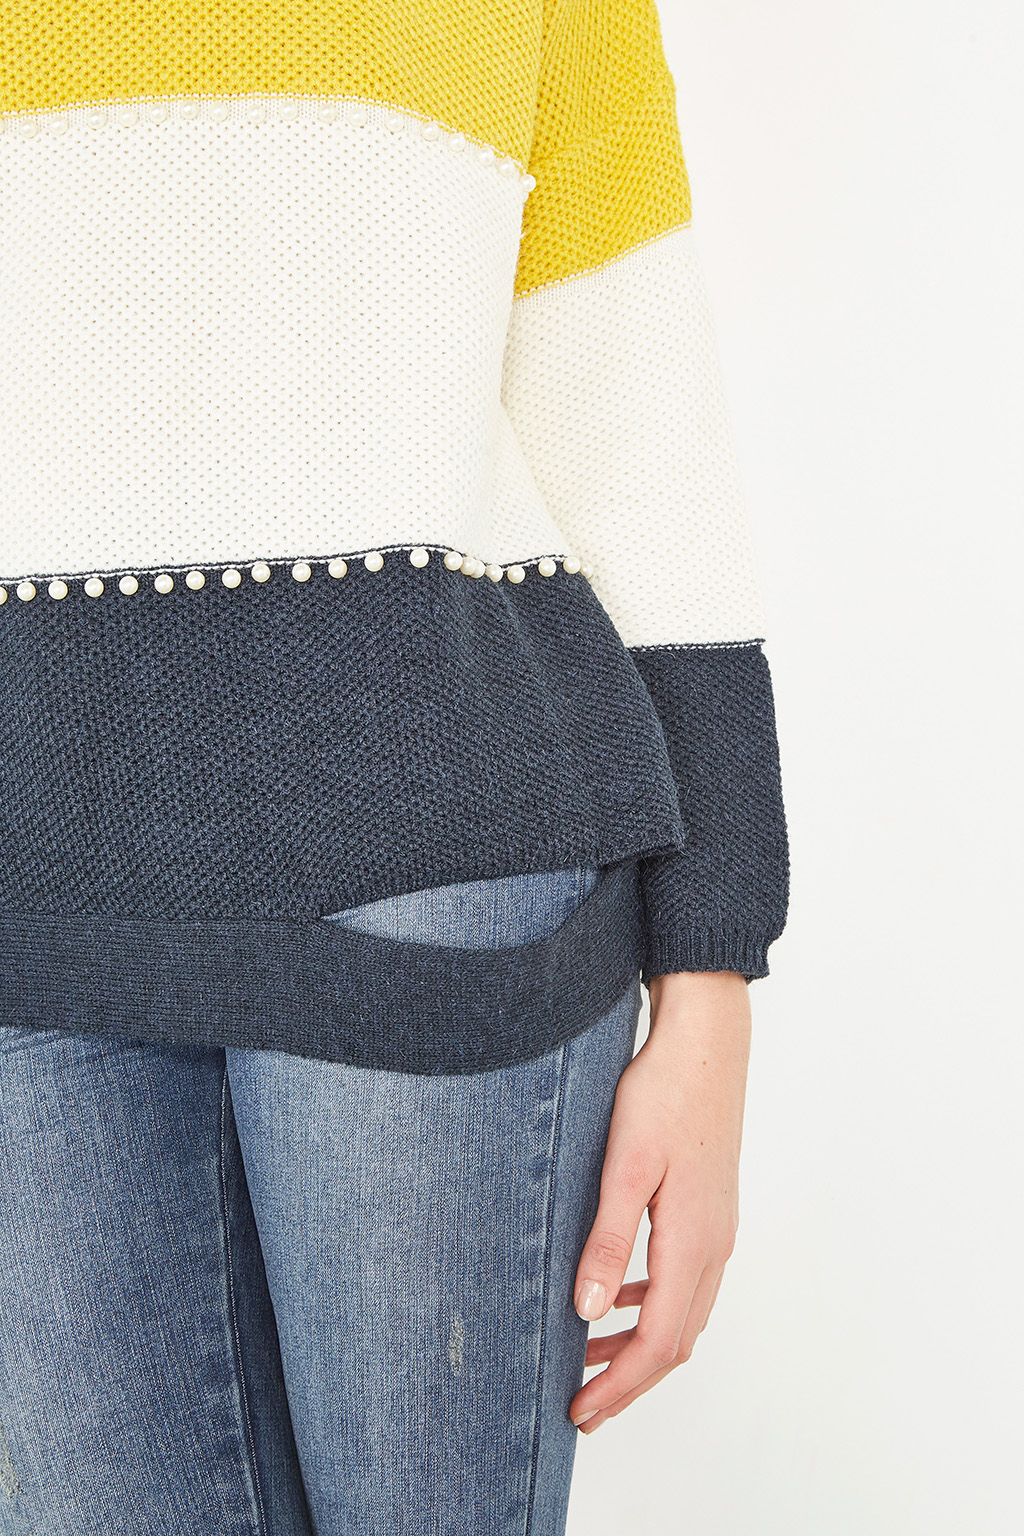 Pull à perles #collectionIRL sur Showroomprivé.